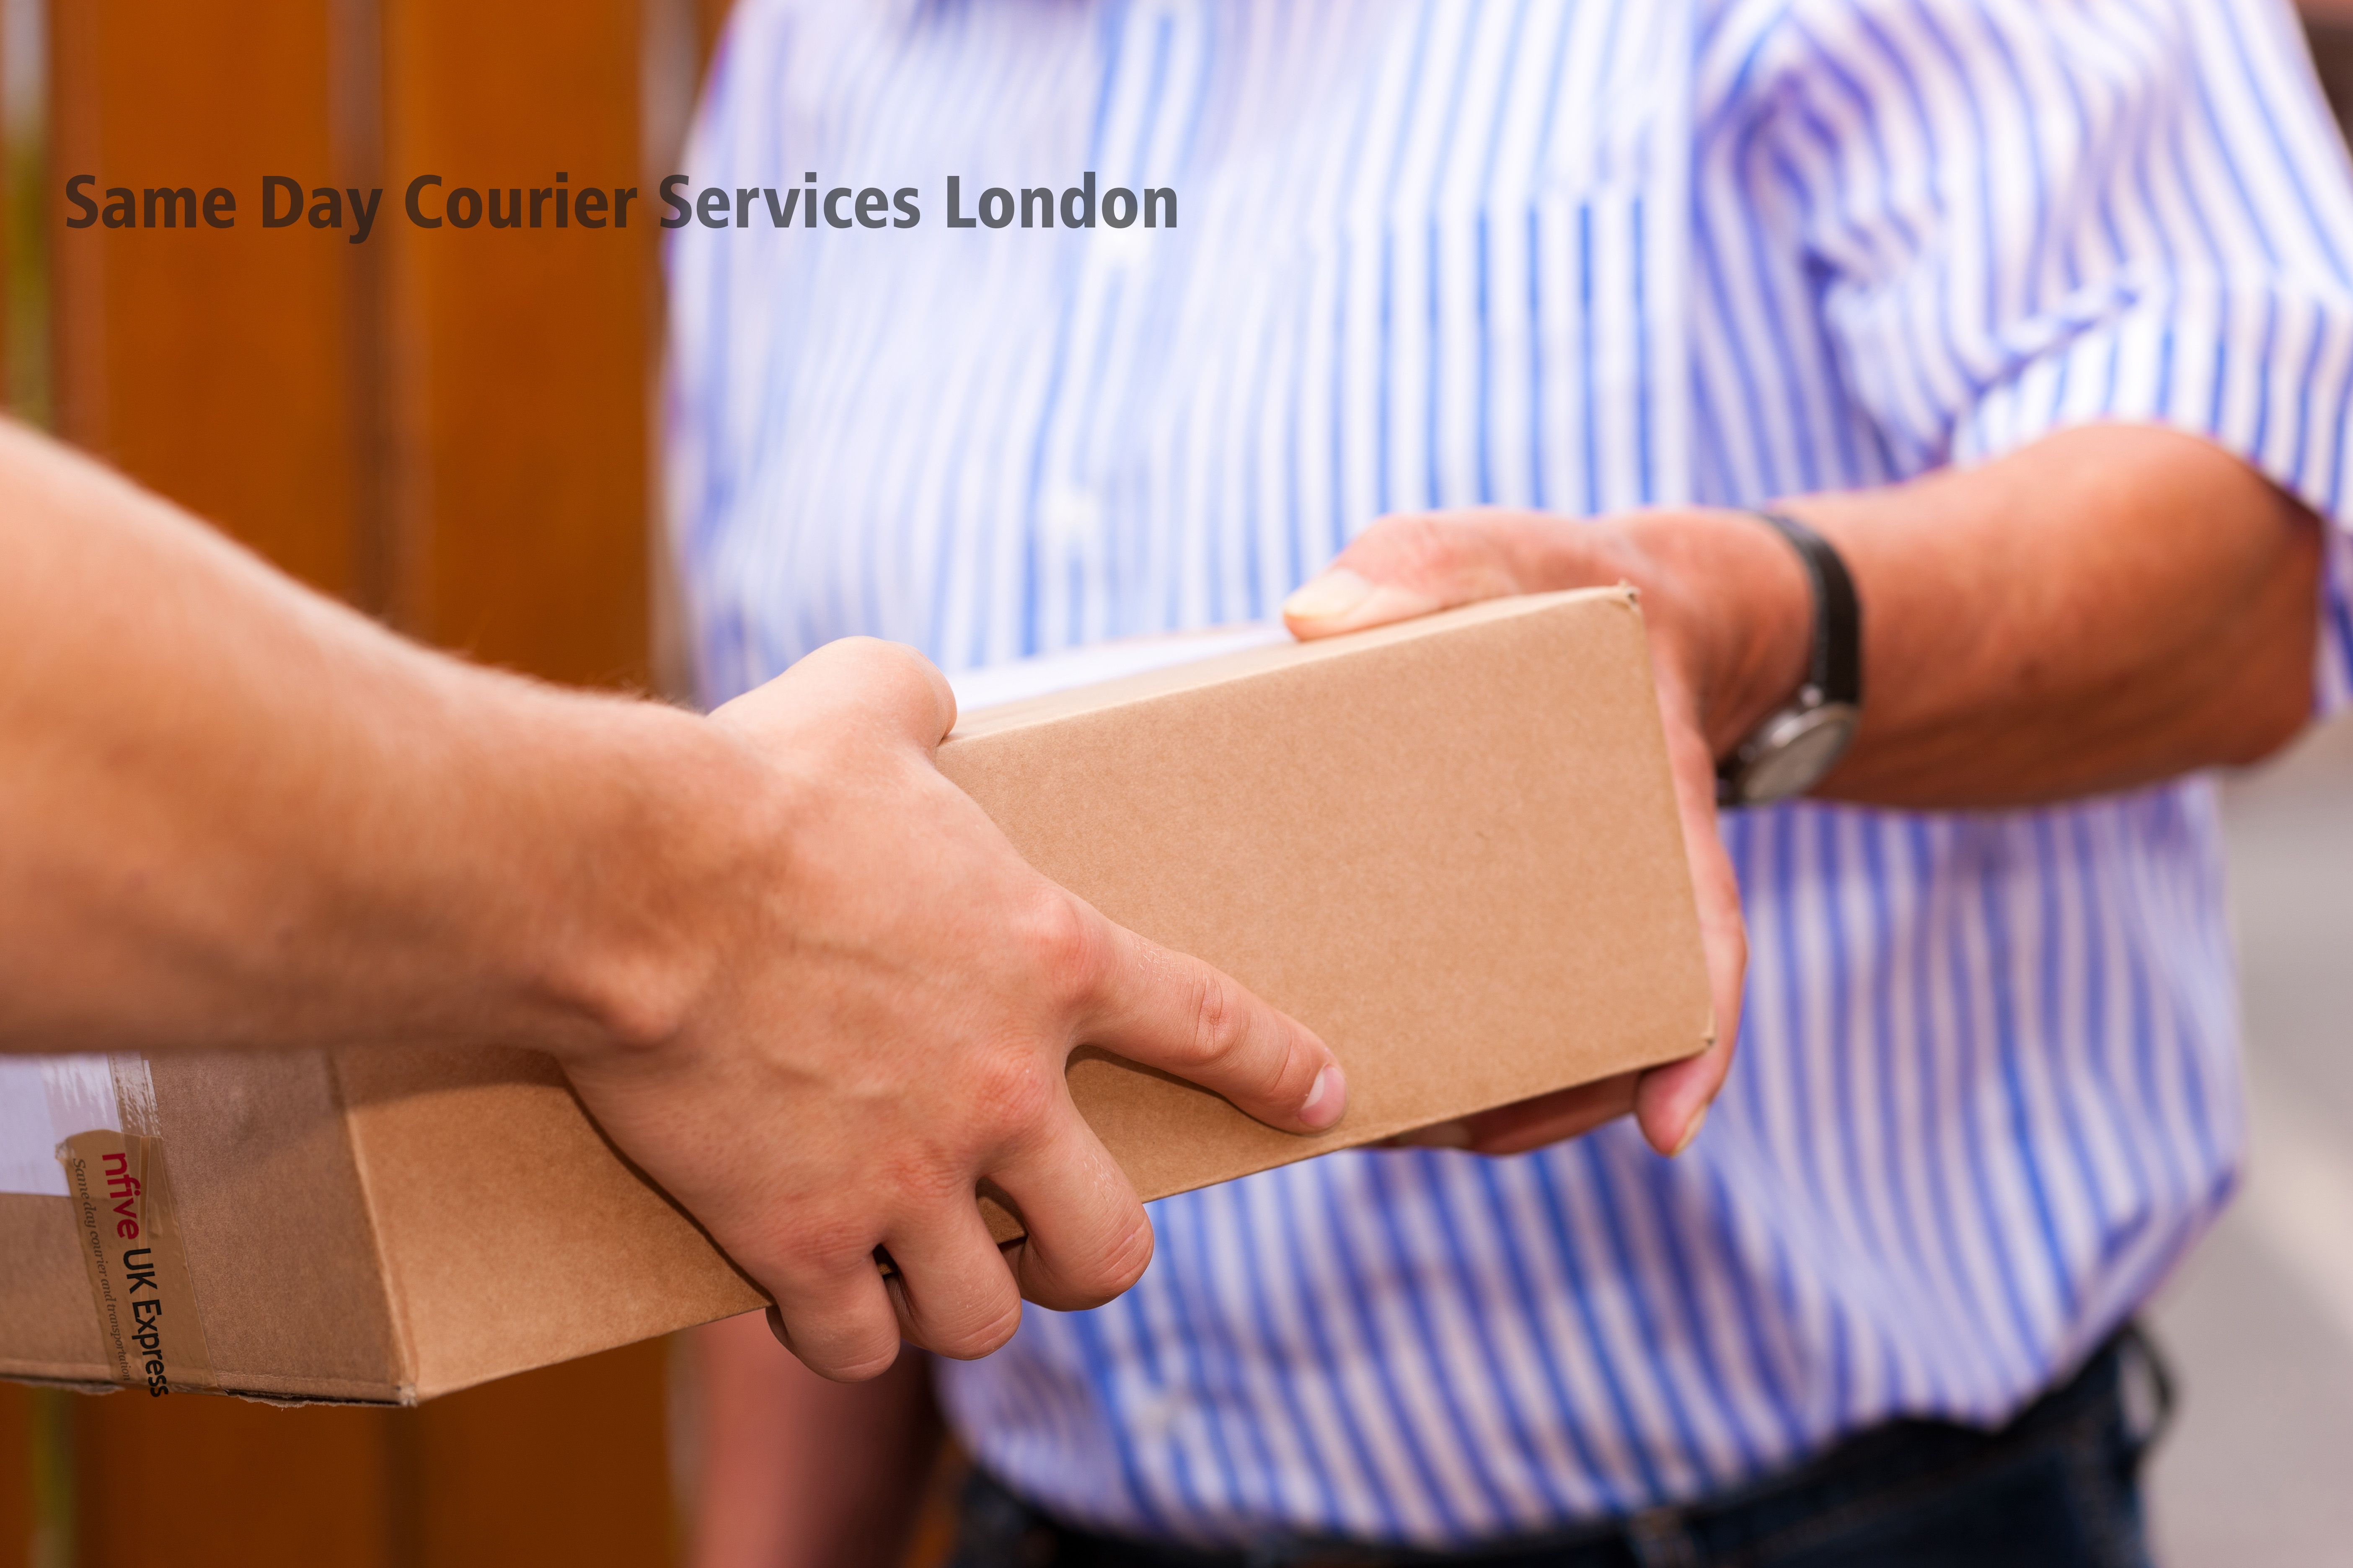 A reliable courier service is very important for business